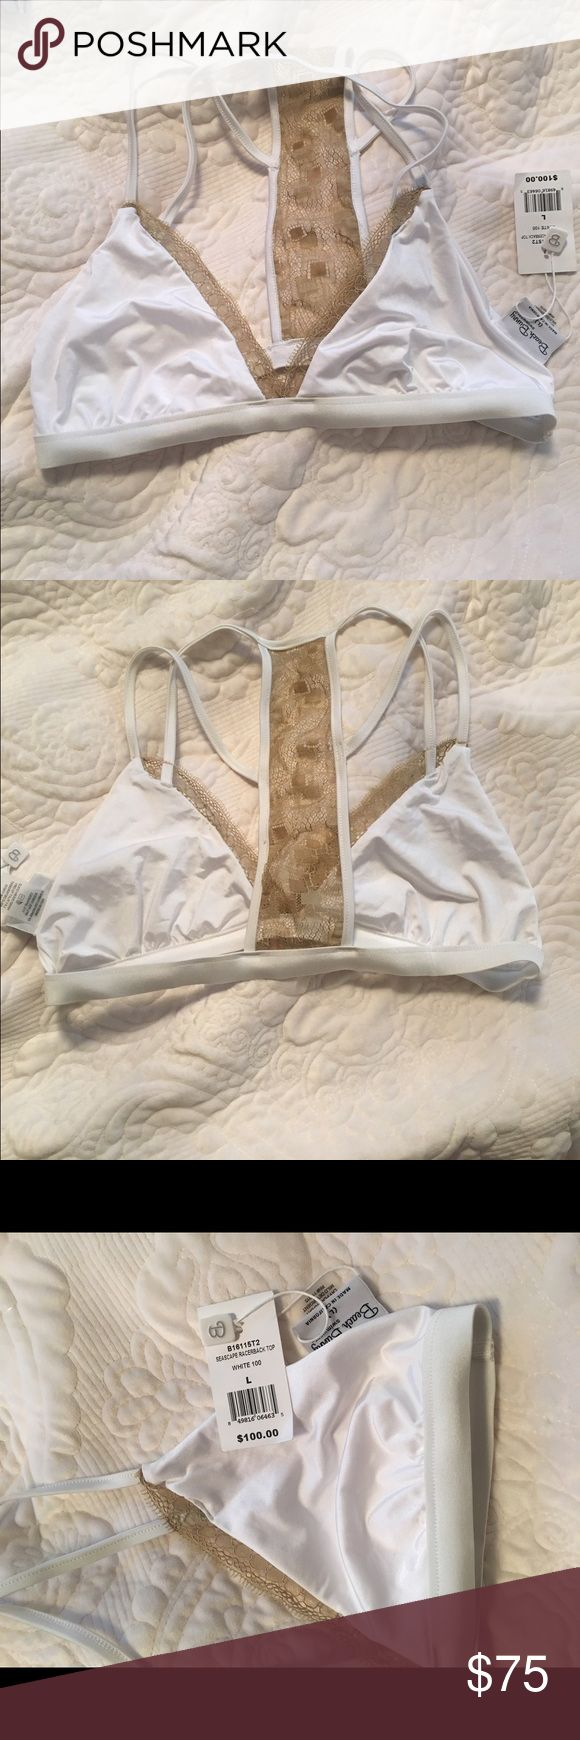 Beach bunny seascape racerback top white NWT Beach bunny seascape racerback top white and tan lace  perfect condition-never worn Beach Bunny Swim Bikinis